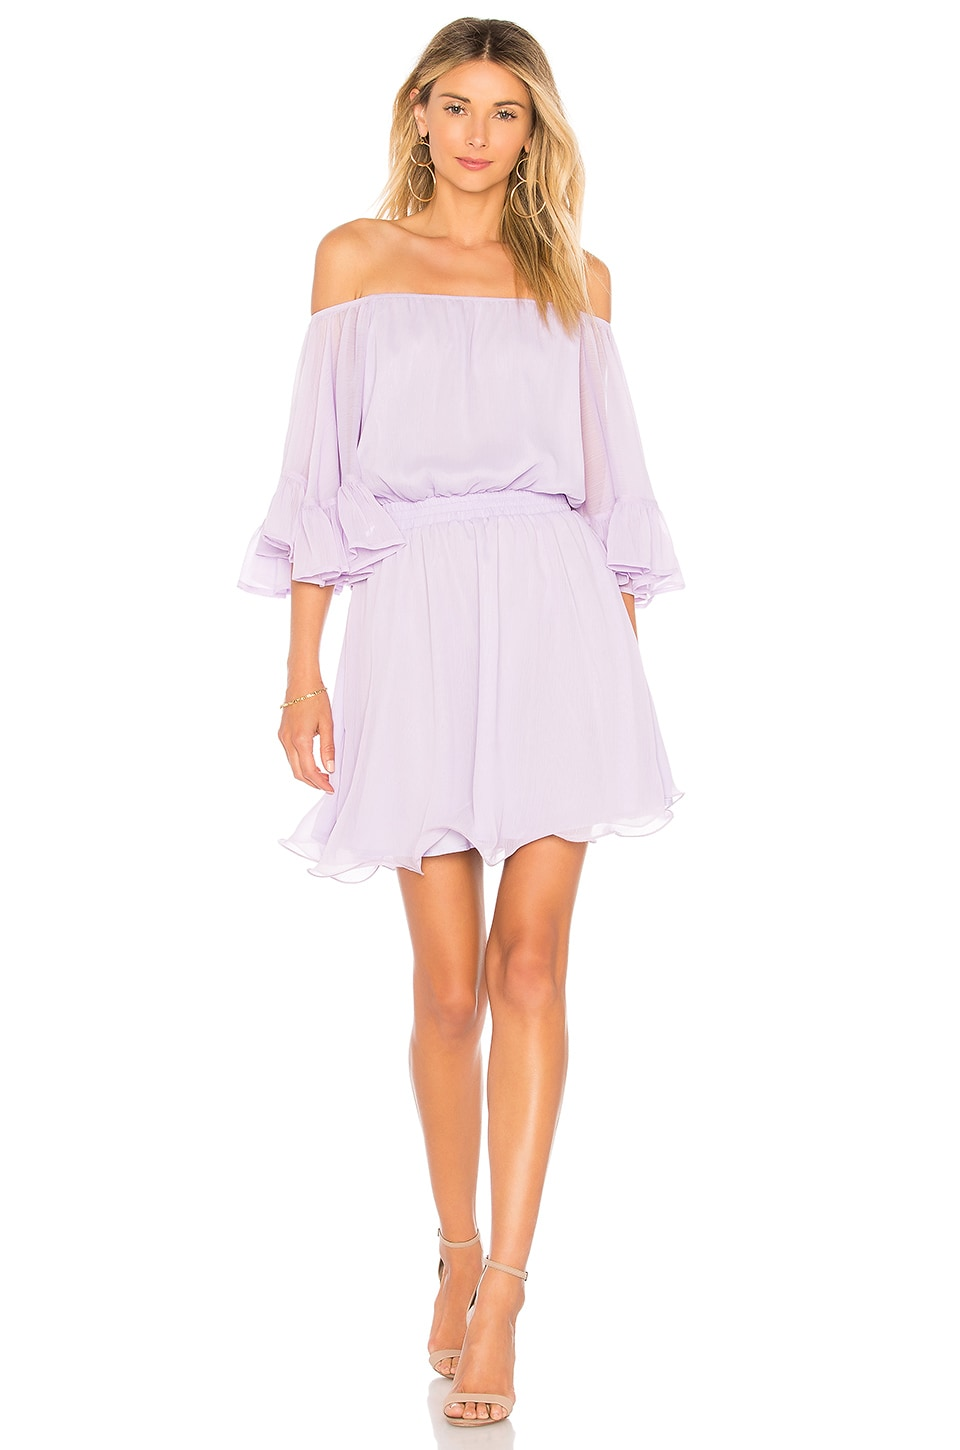 Endless Rose X Revolve Ruffle Mini Dress In Lilac Revolve Can you believe that revolve dress was only $50???? endless rose